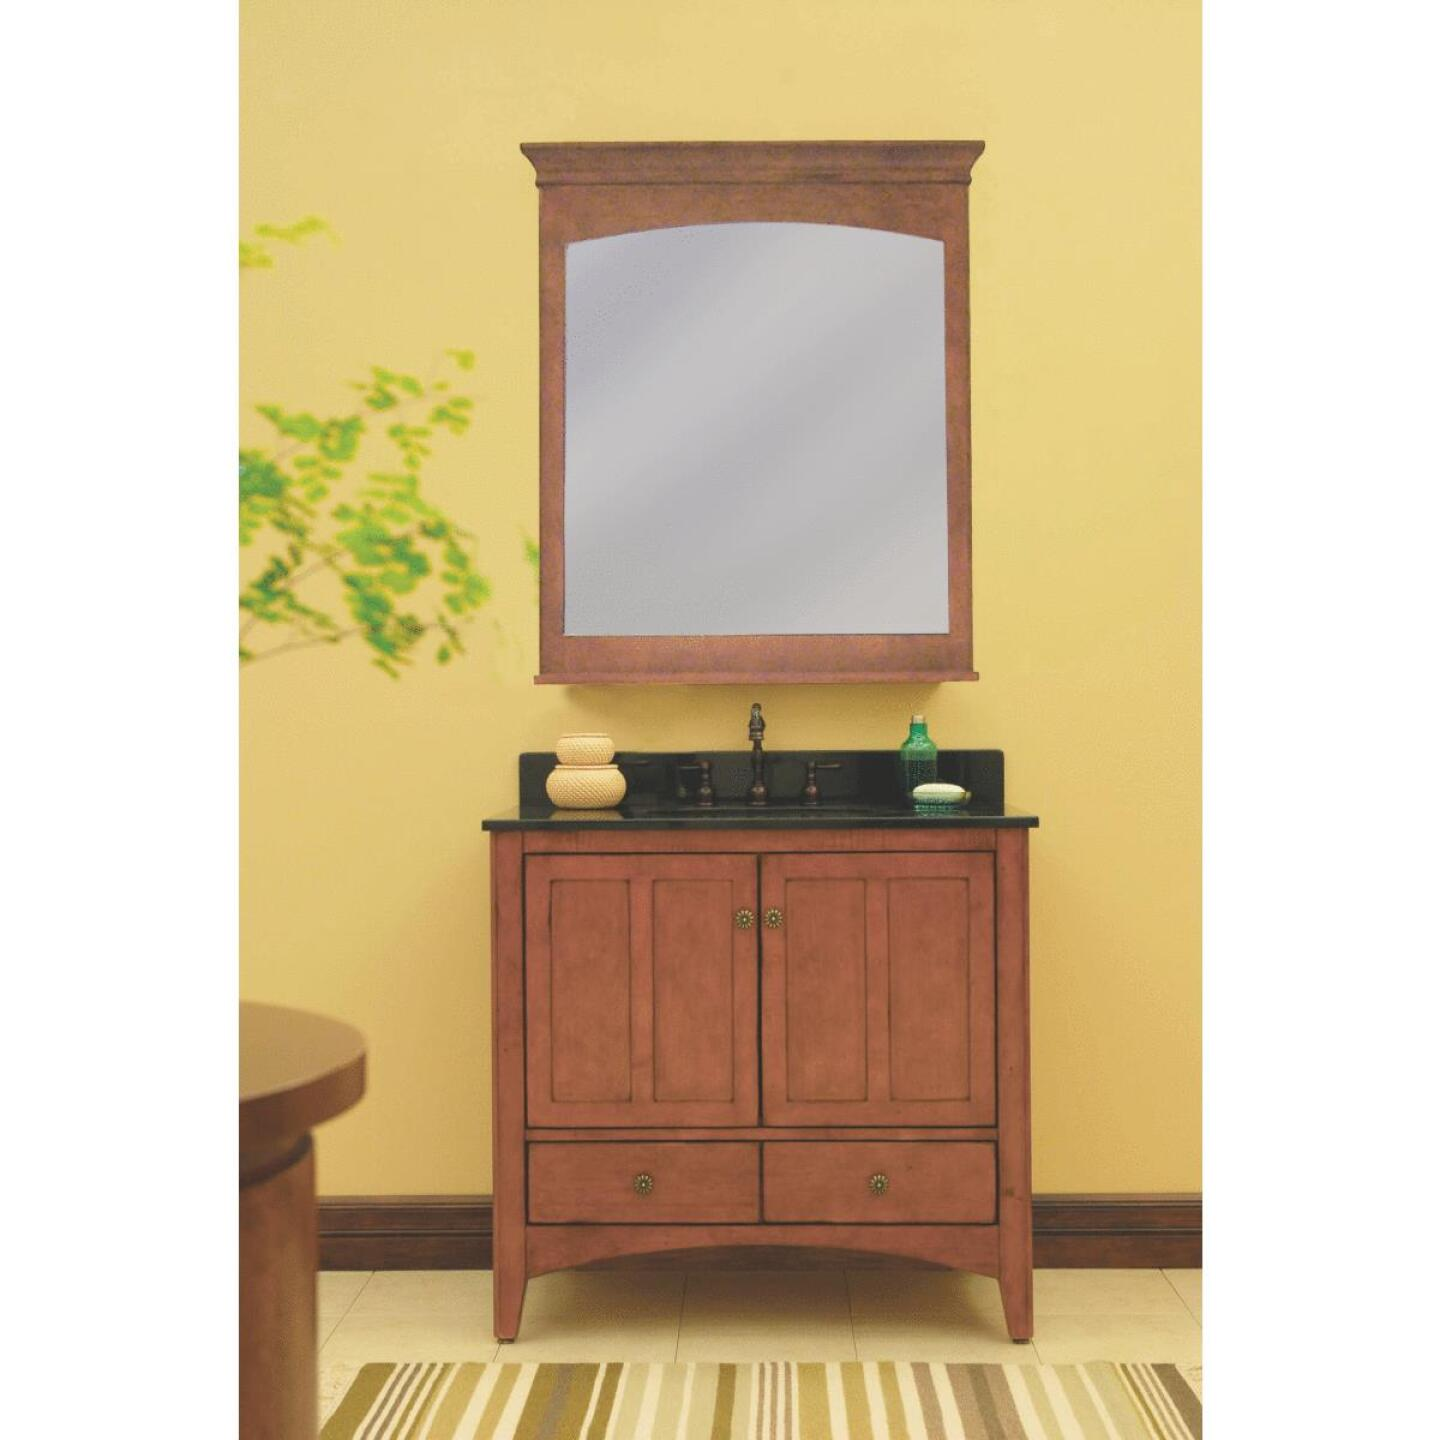 Sunny Wood Expressions Warm Cinnamon 36 In. W x 34 In. H x 21-1/4 In. D Vanity Base, 2 Door/2 Drawer Image 3